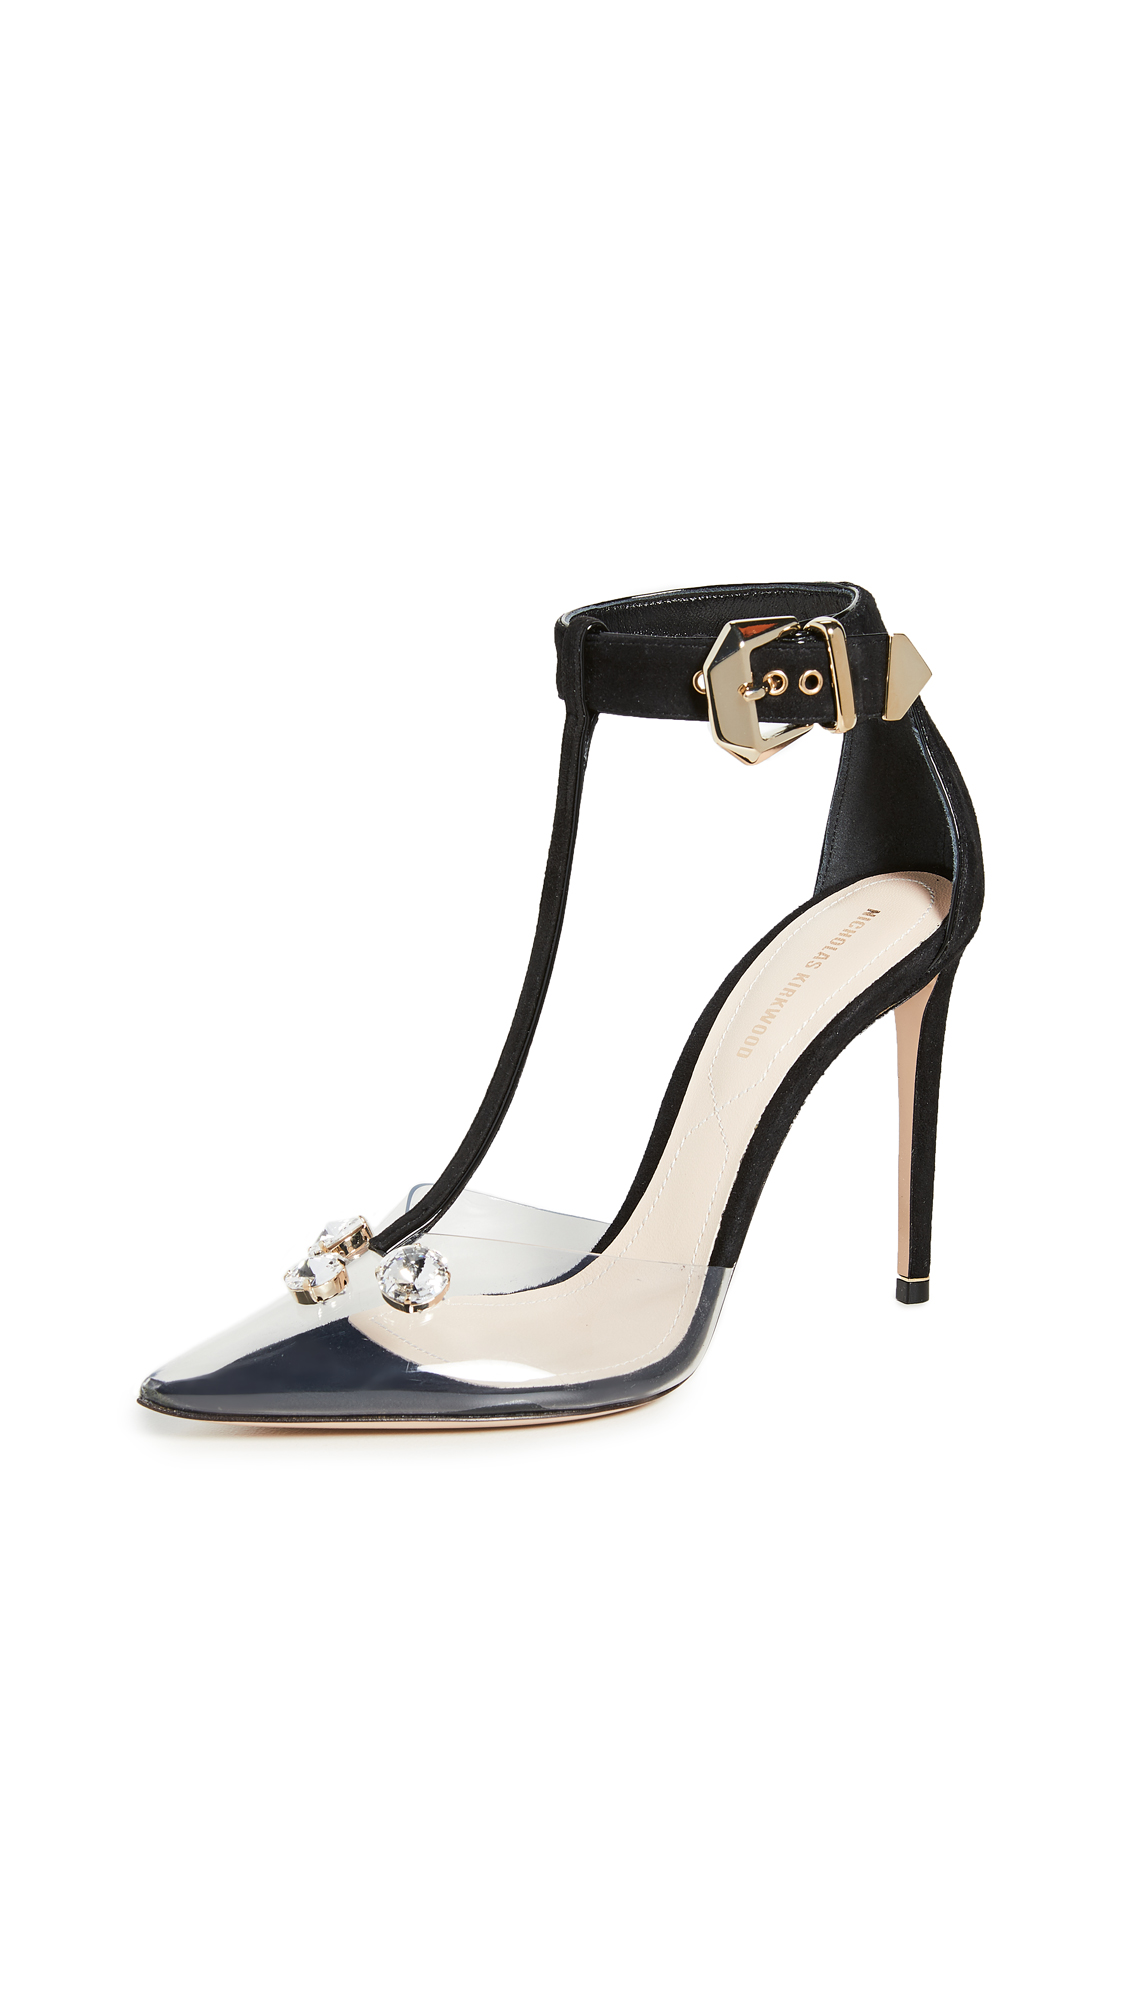 Nicholas Kirkwood Karlie Pumps - 60% Off Sale